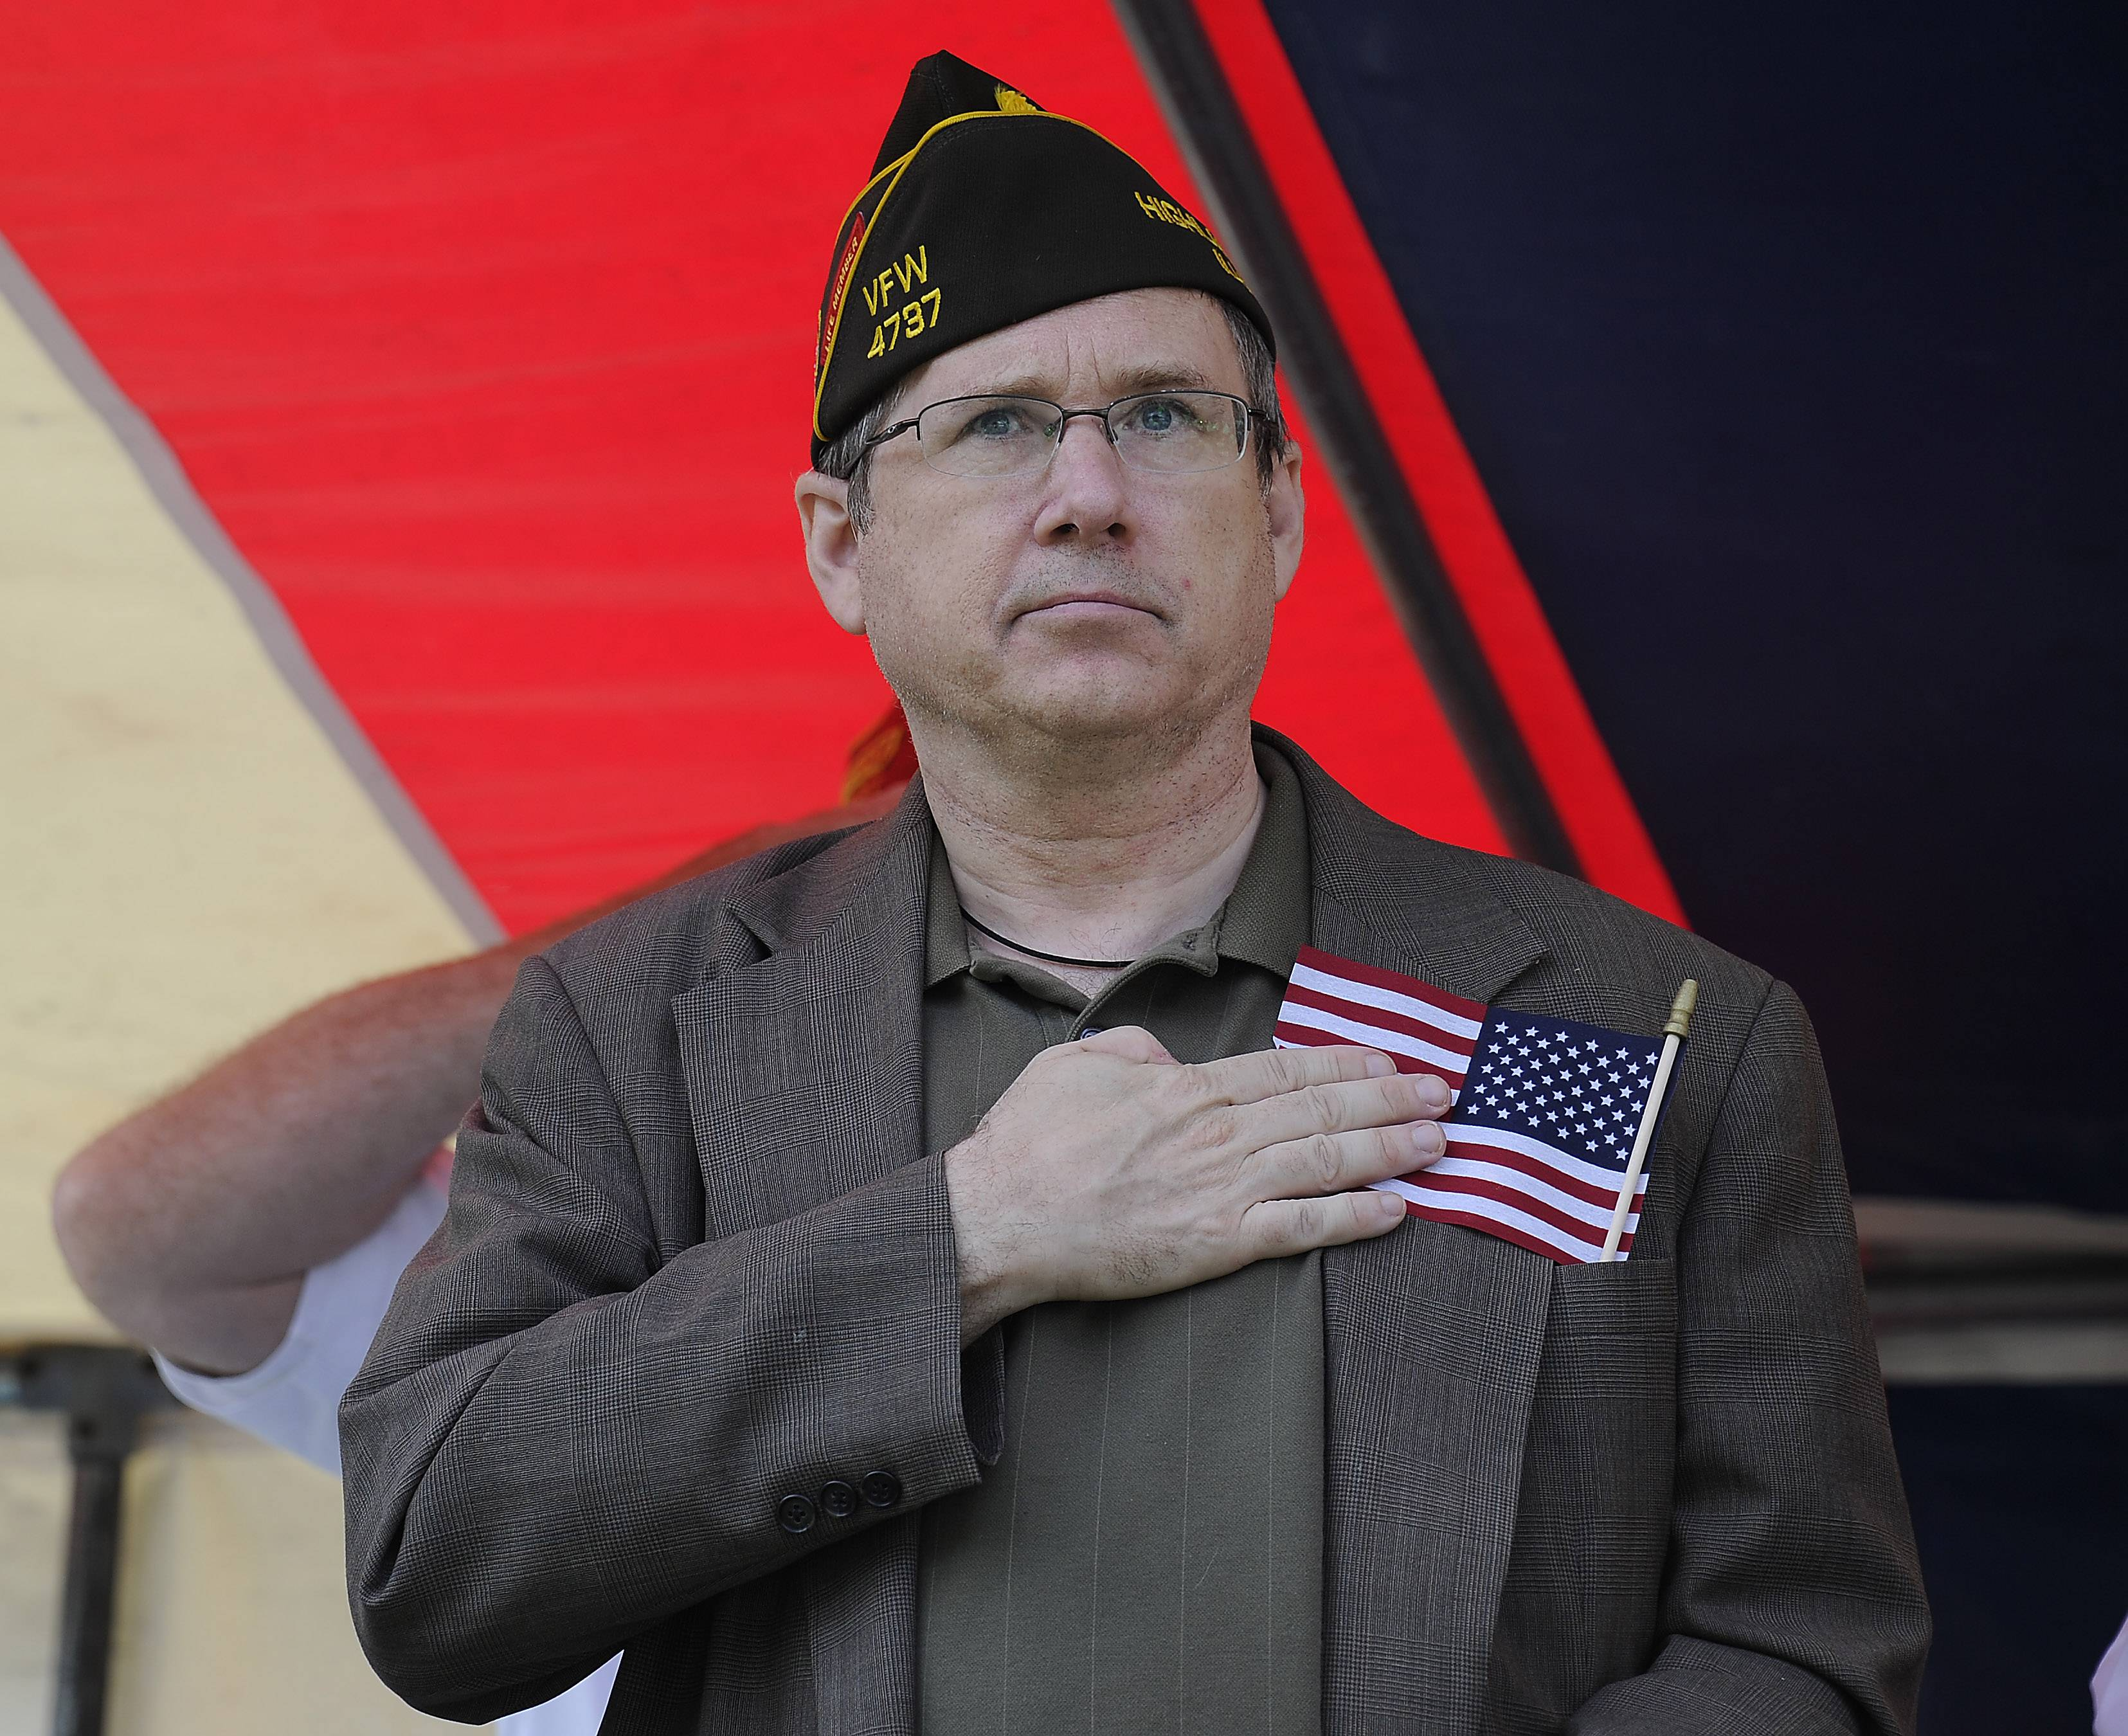 U.S. Sen. Mark Kirk before the start of the ceremony at the Arlington Heights Memorial Day event on Monday.